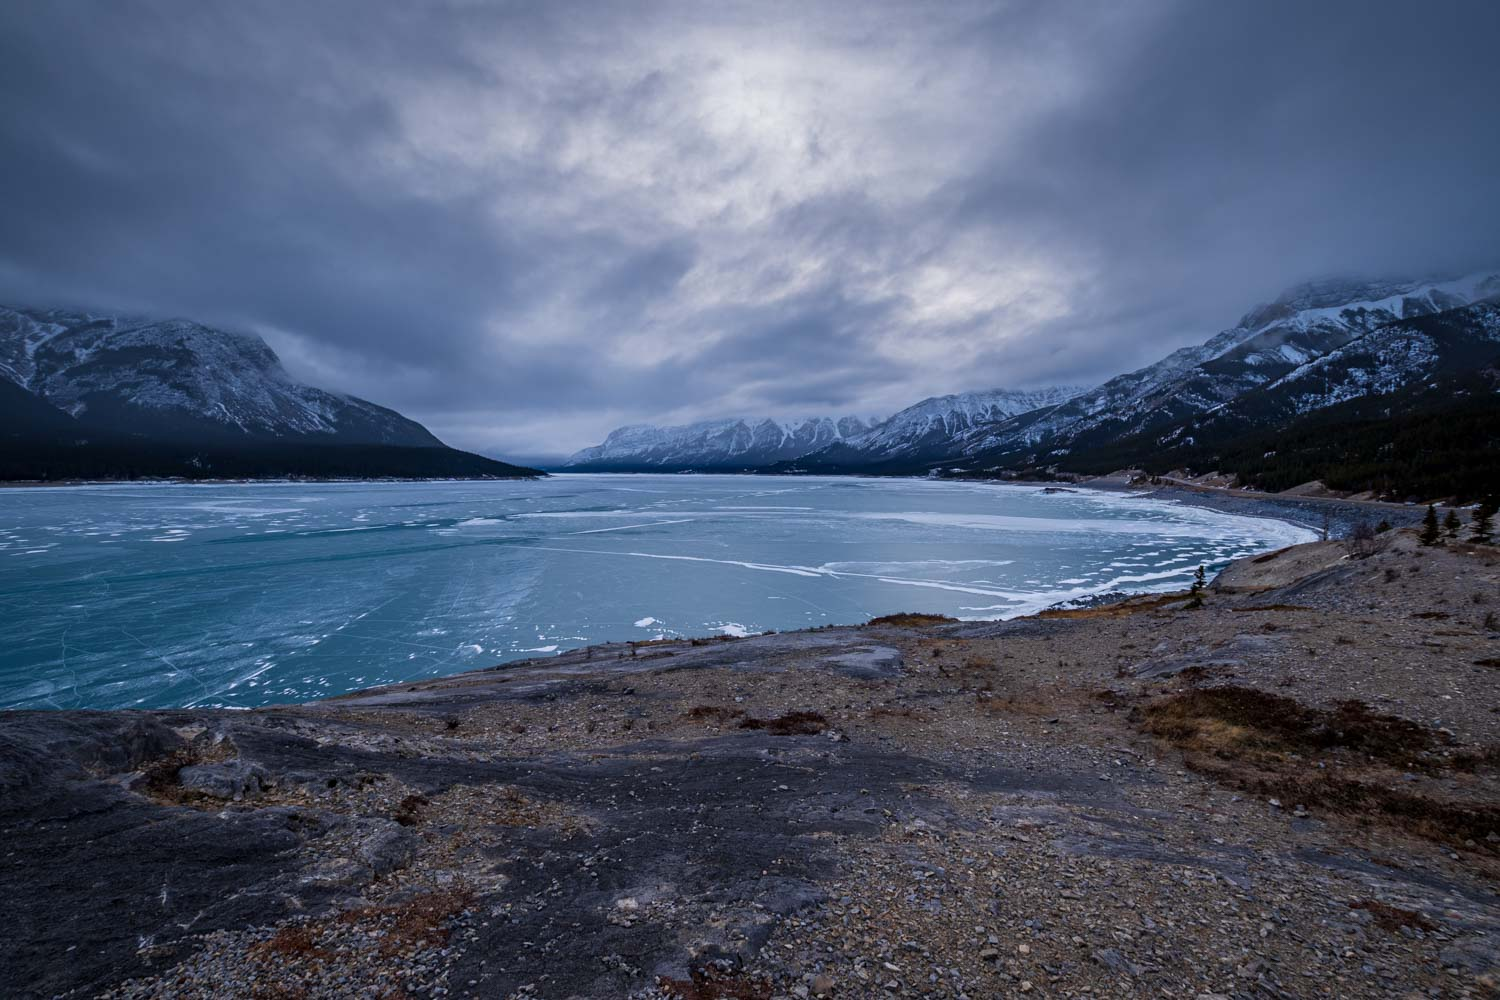 A moody day on Abraham Lake